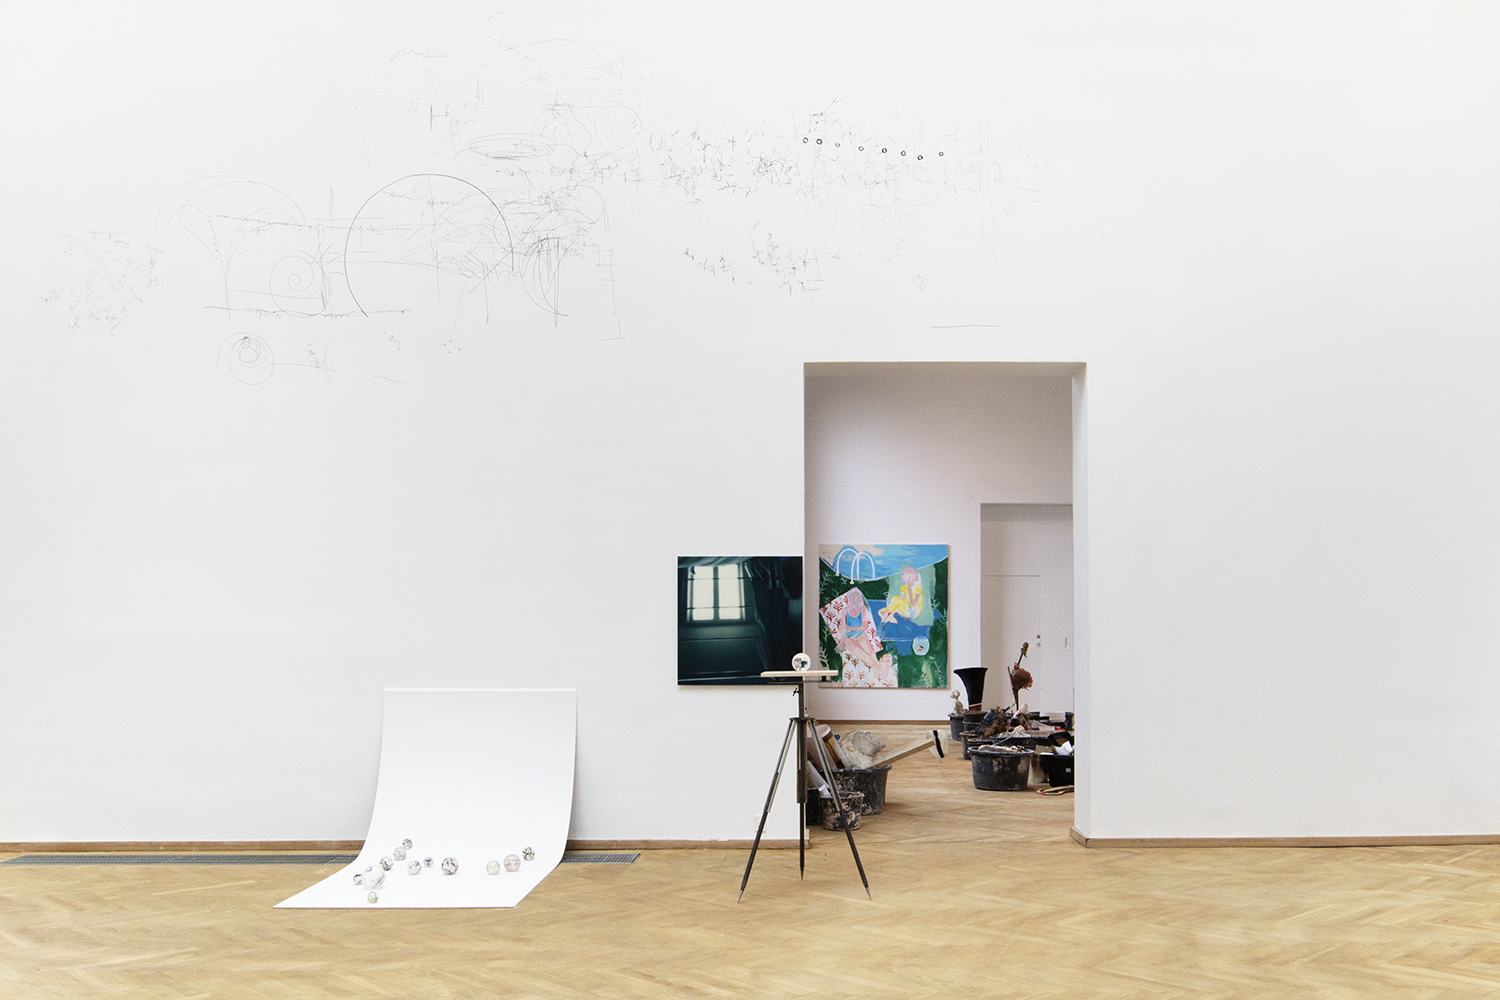 """Veronica Riget """"Preparations to leave the surface"""" 